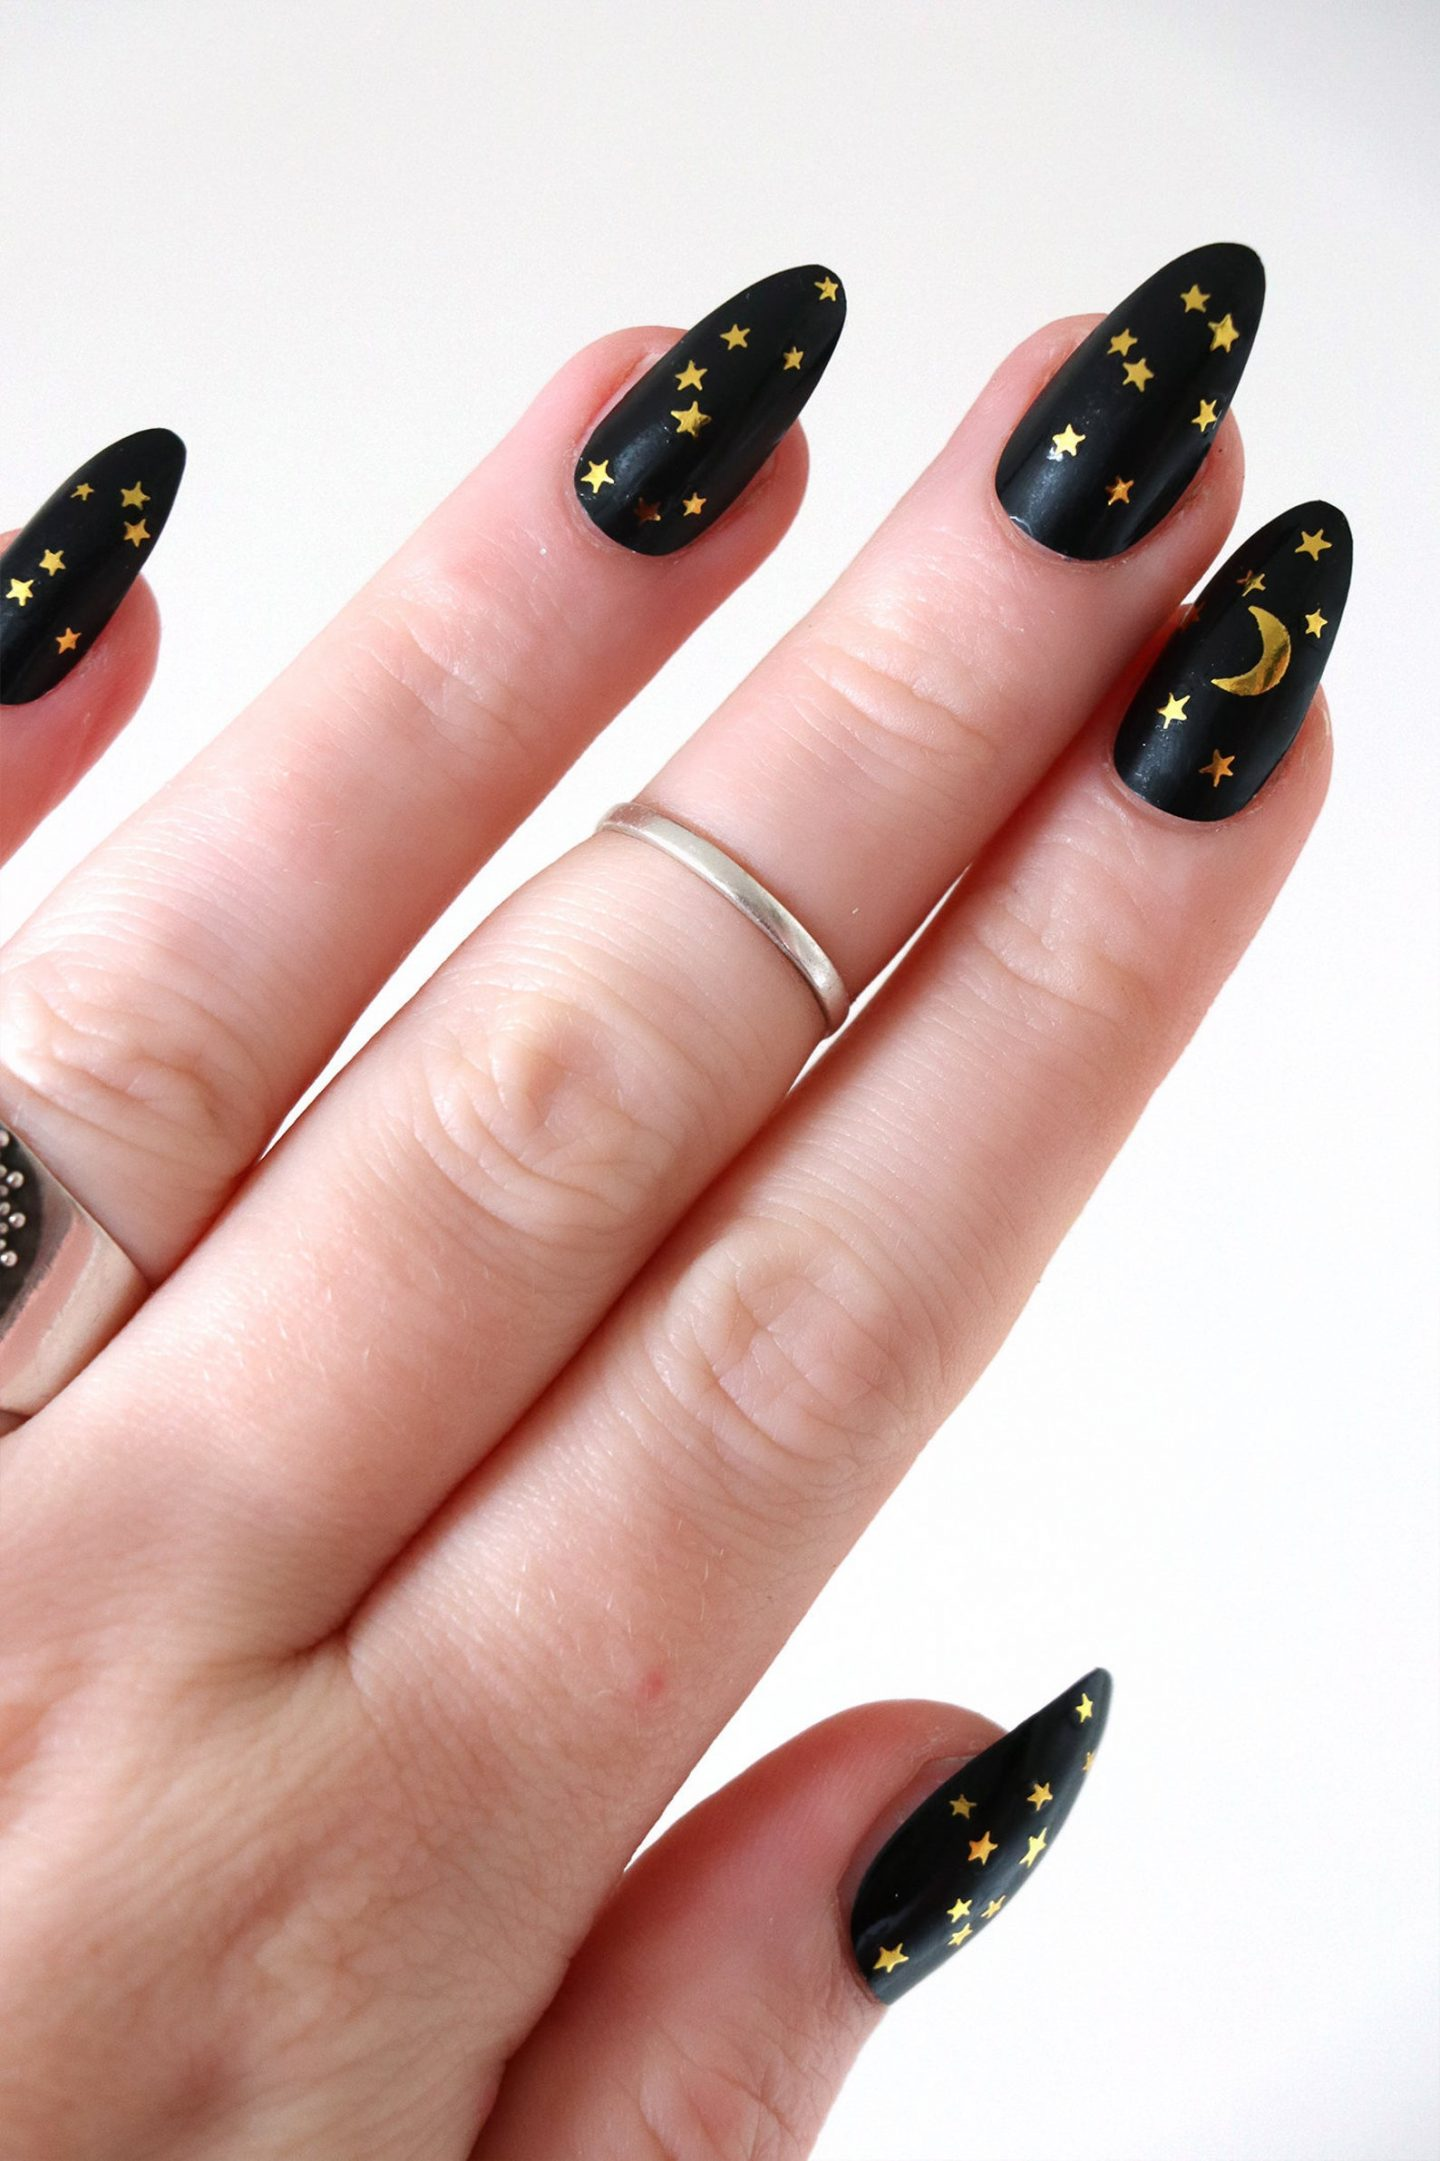 Cute black and gold nails with moon and star nail art